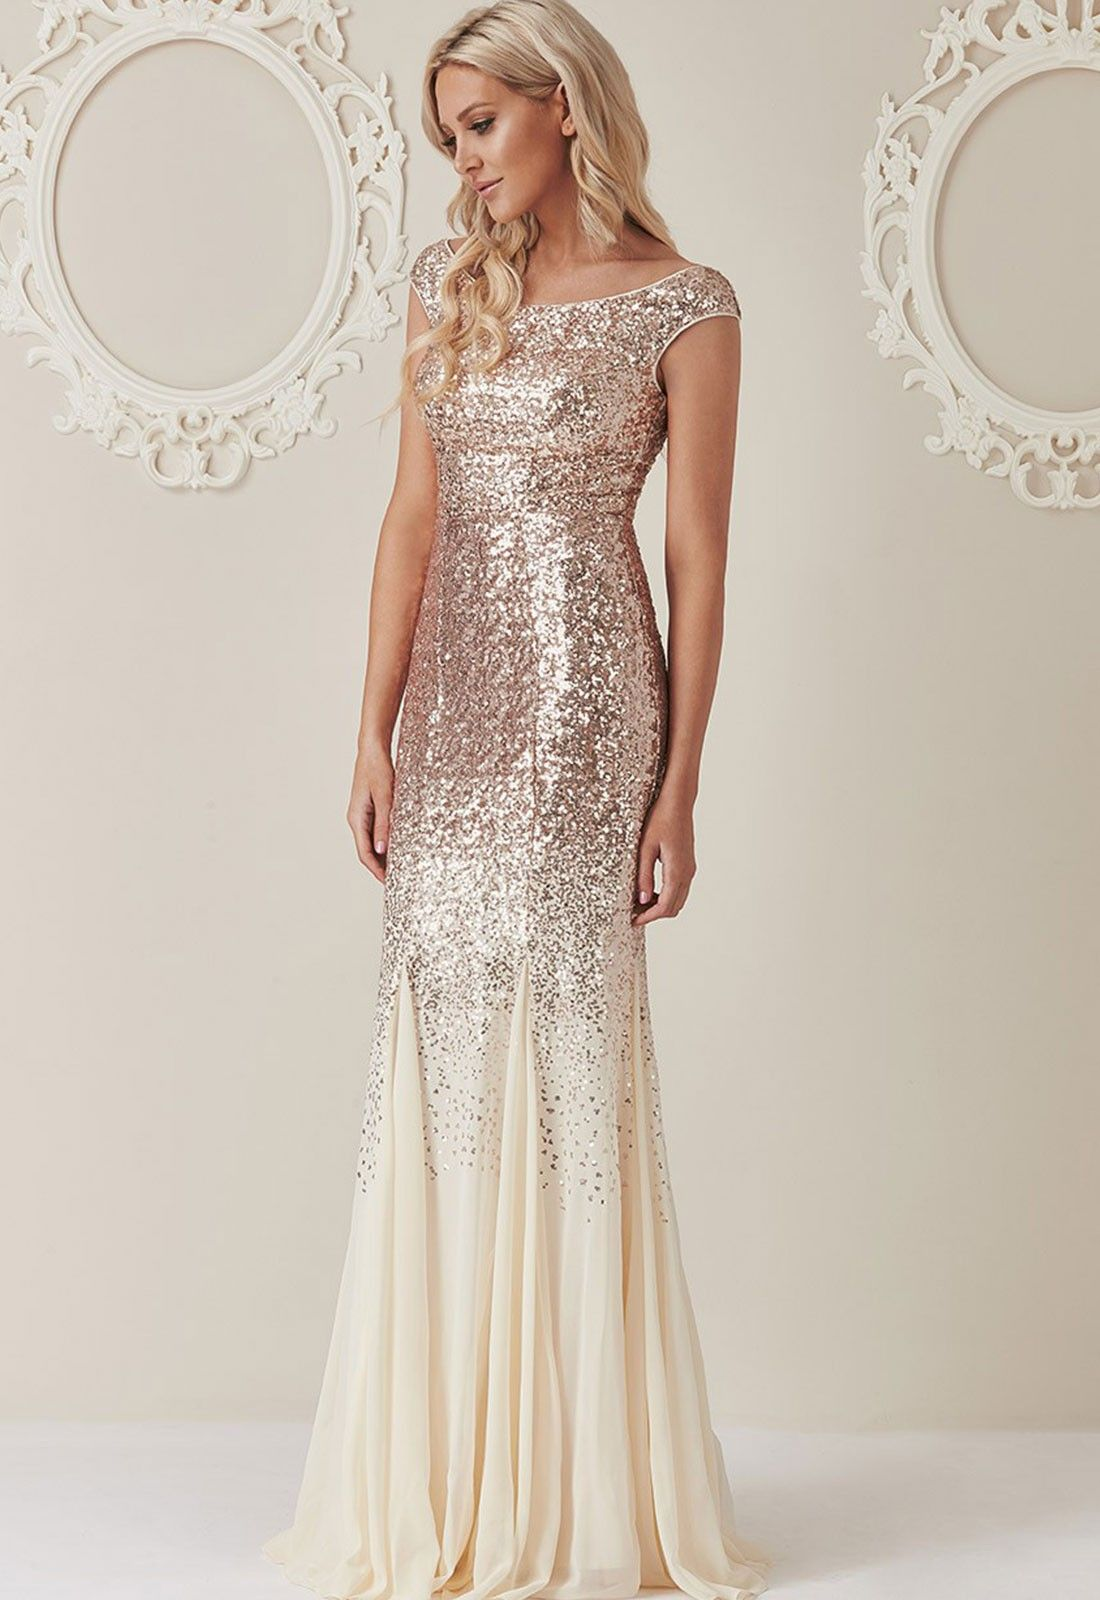 ebbc2fc4 For ultimate red carpet glamour that is sure to make an unforgettable  impression, this showstopping embellished maxi dress from Stephanie Pratt's  French ...